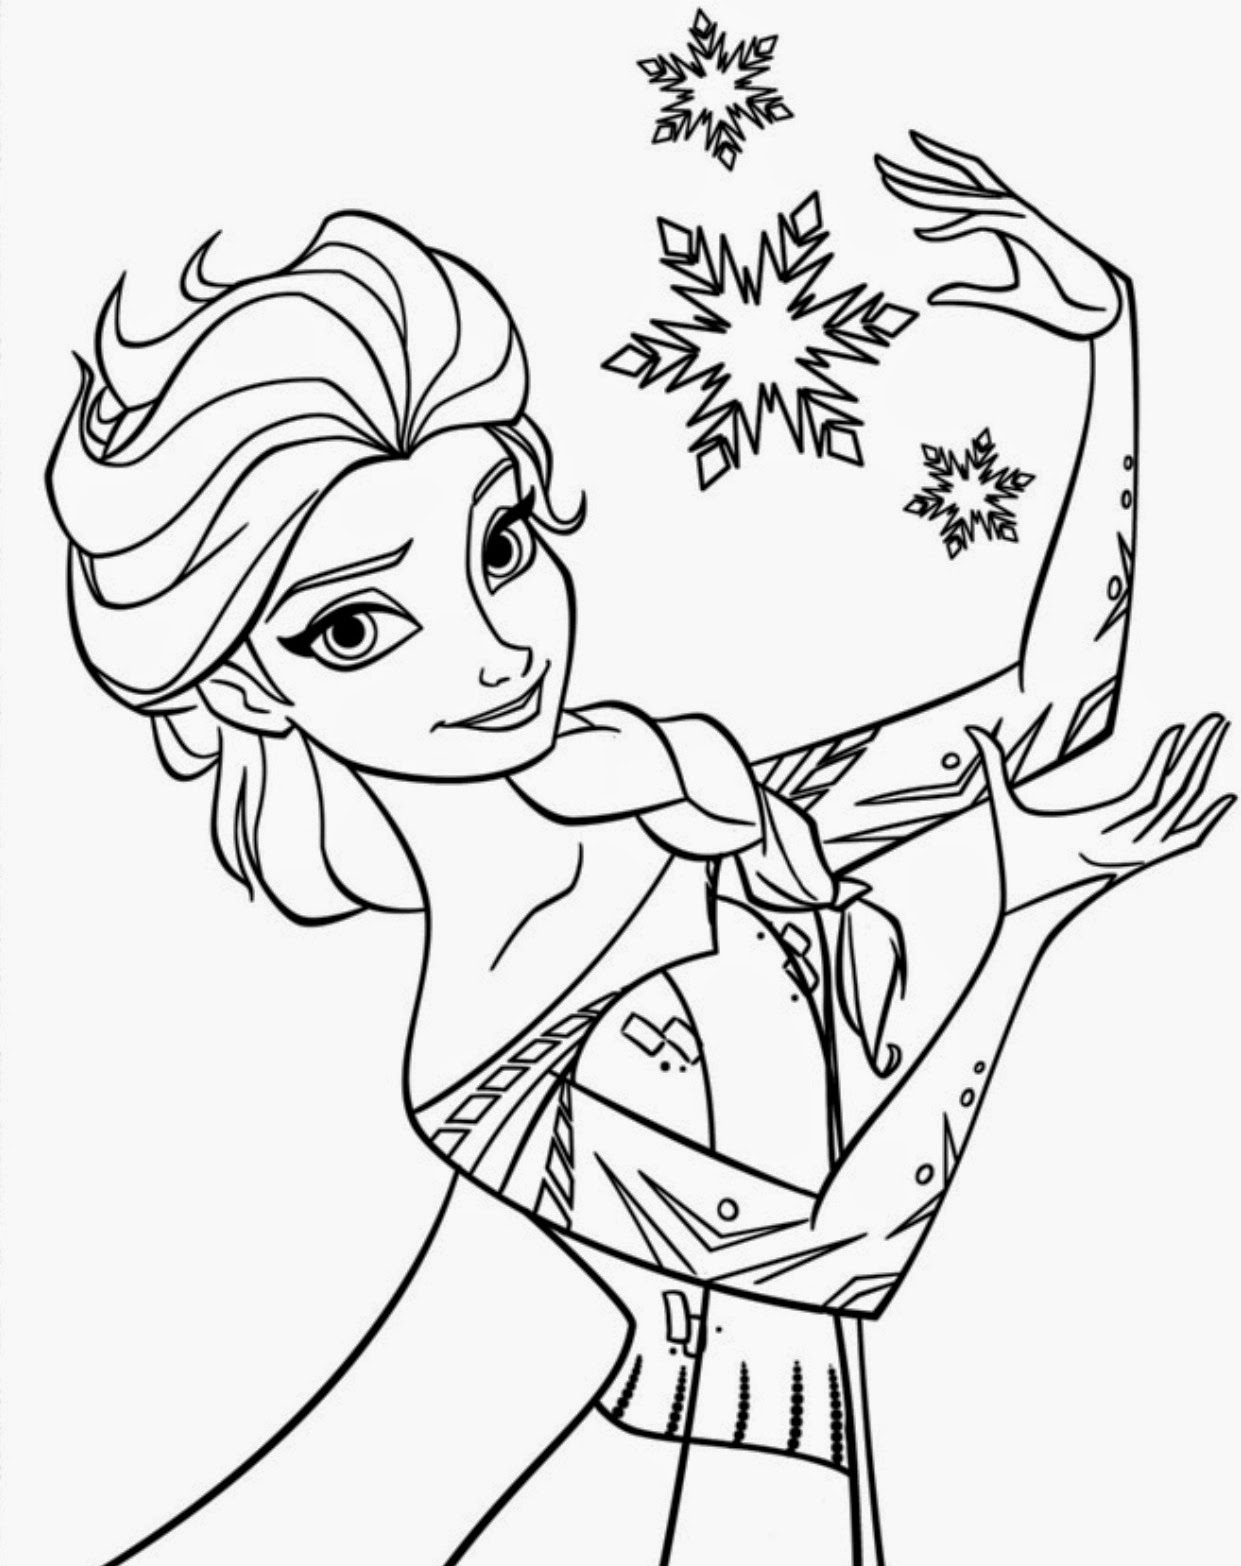 15 Beautiful Disney Frozen Coloring Pages Free Instant Free Coloring Pages For Disney Free